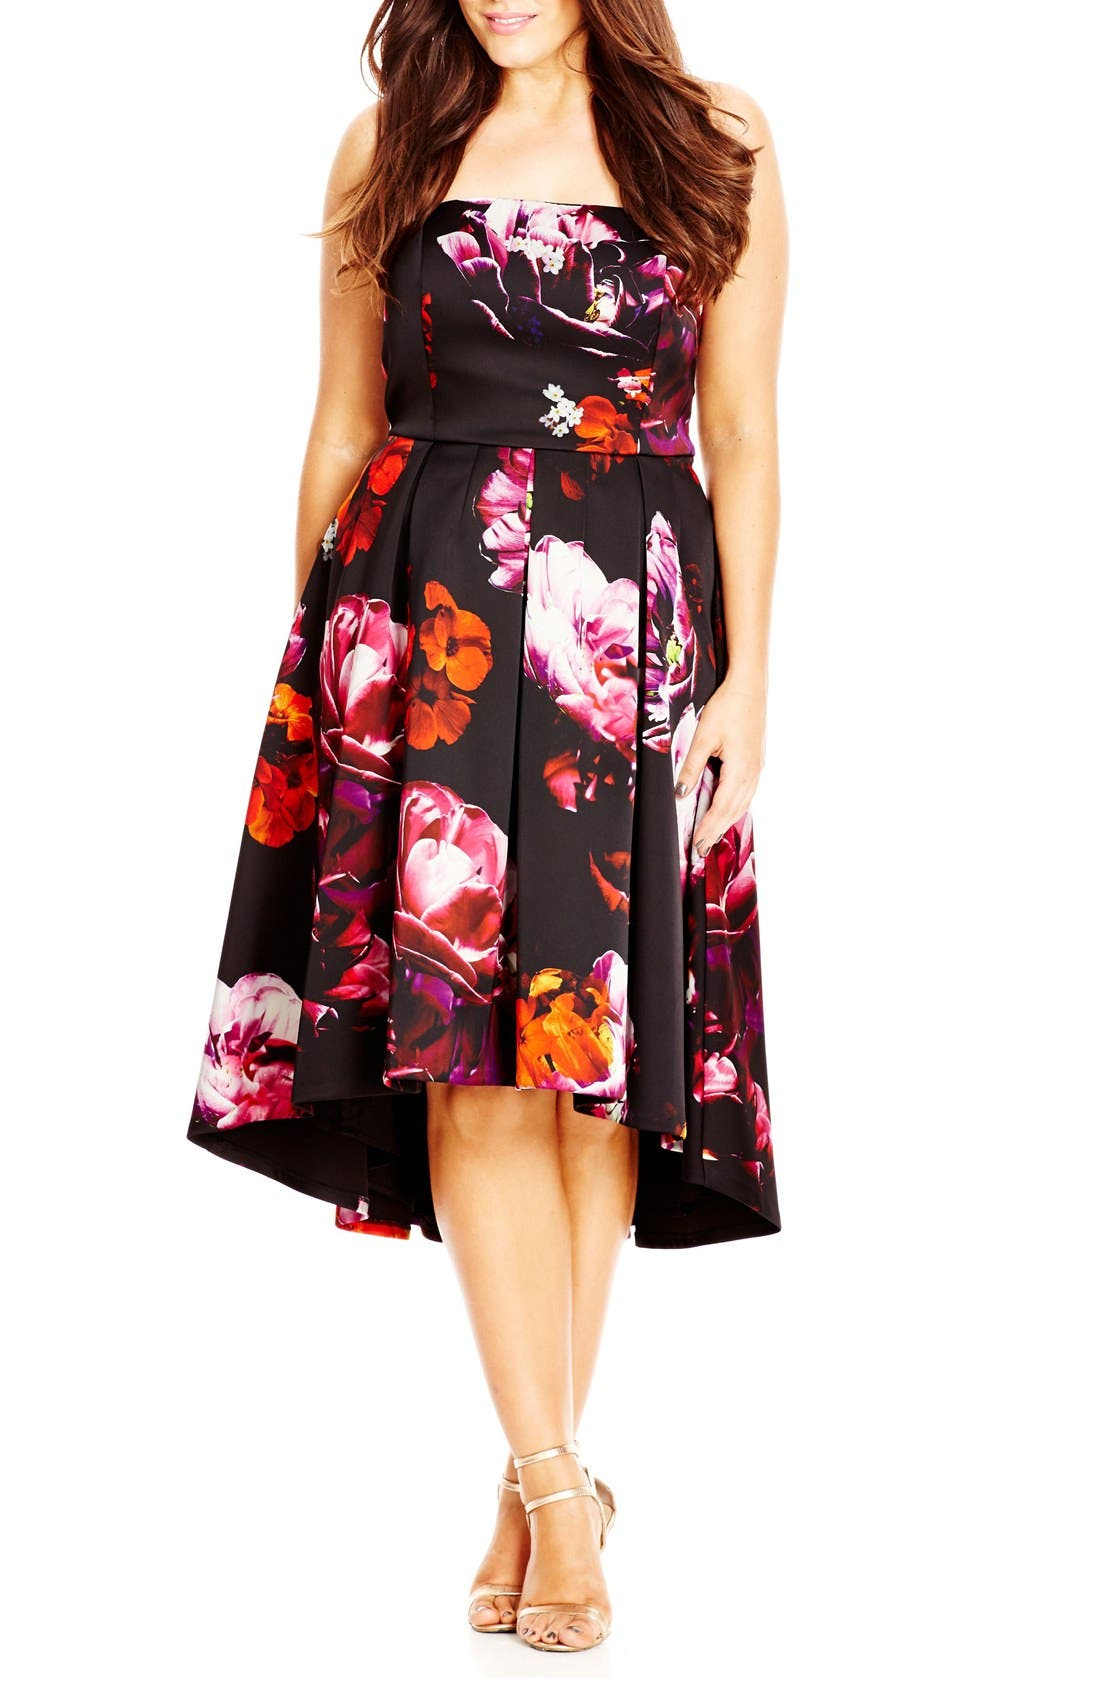 'Floral Magic' Floral Print Strapless High/Low Dress,                             Main thumbnail 1, color,                             001